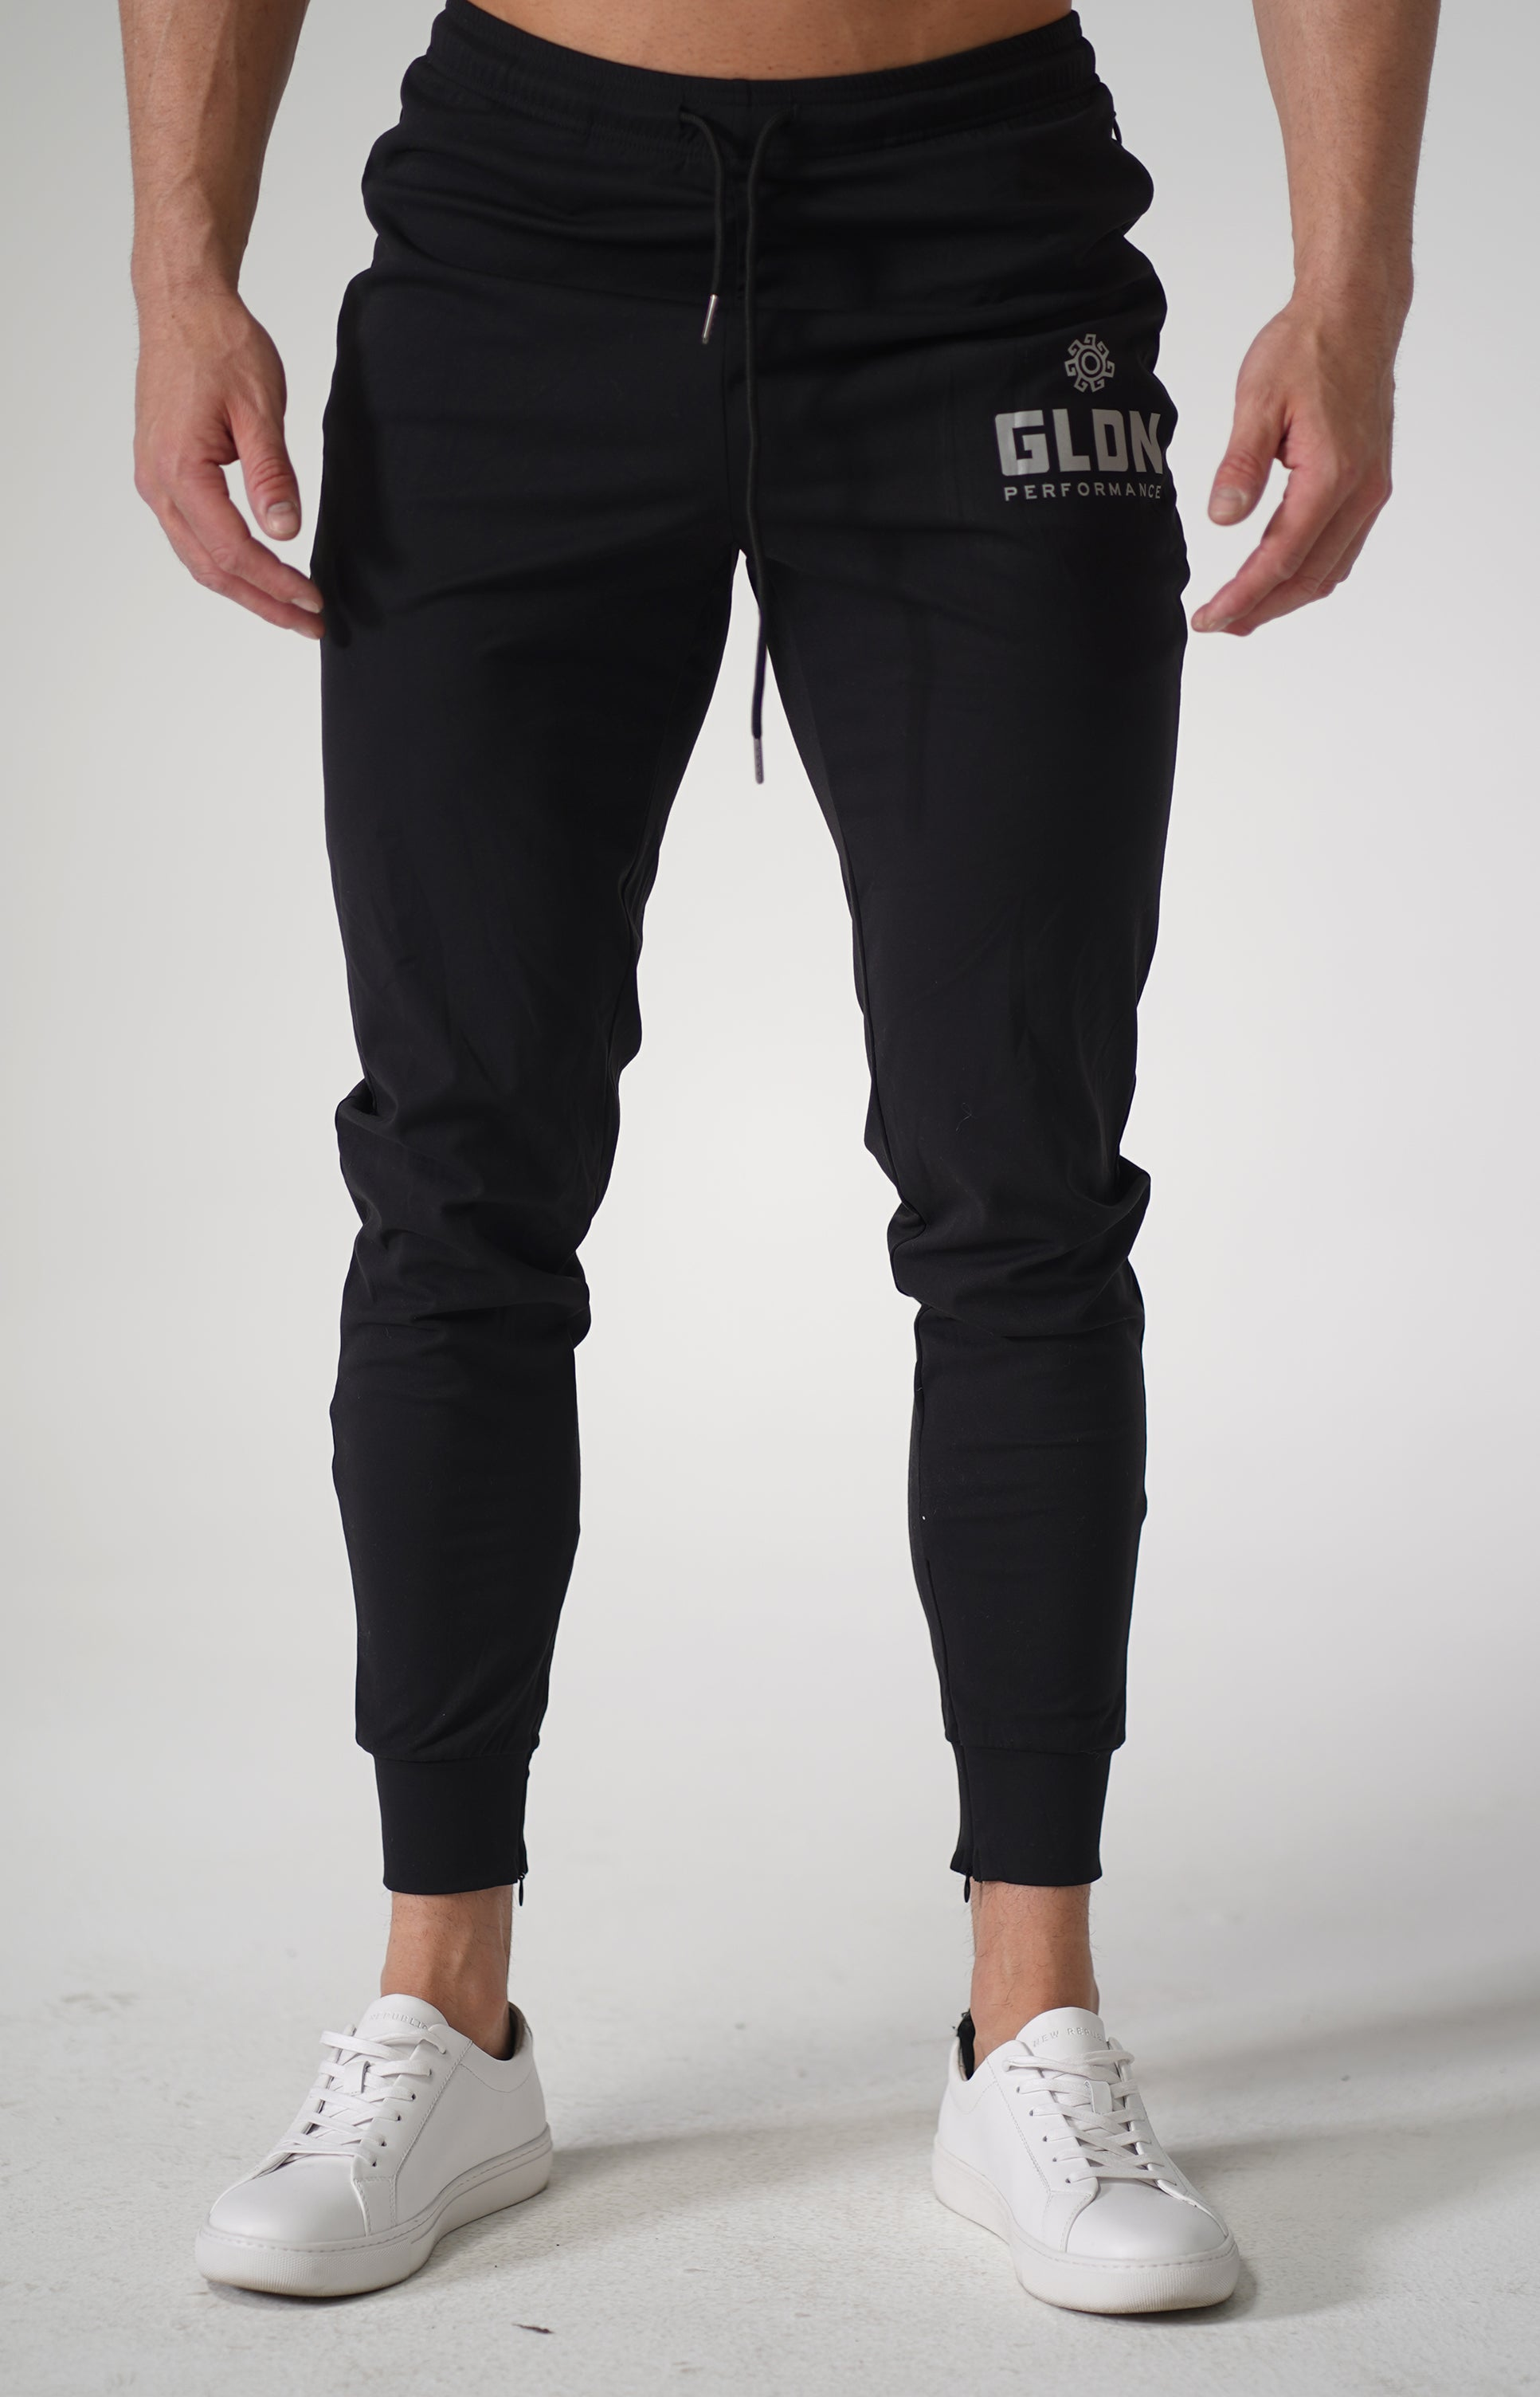 Black GLDN High Performance Track Pants